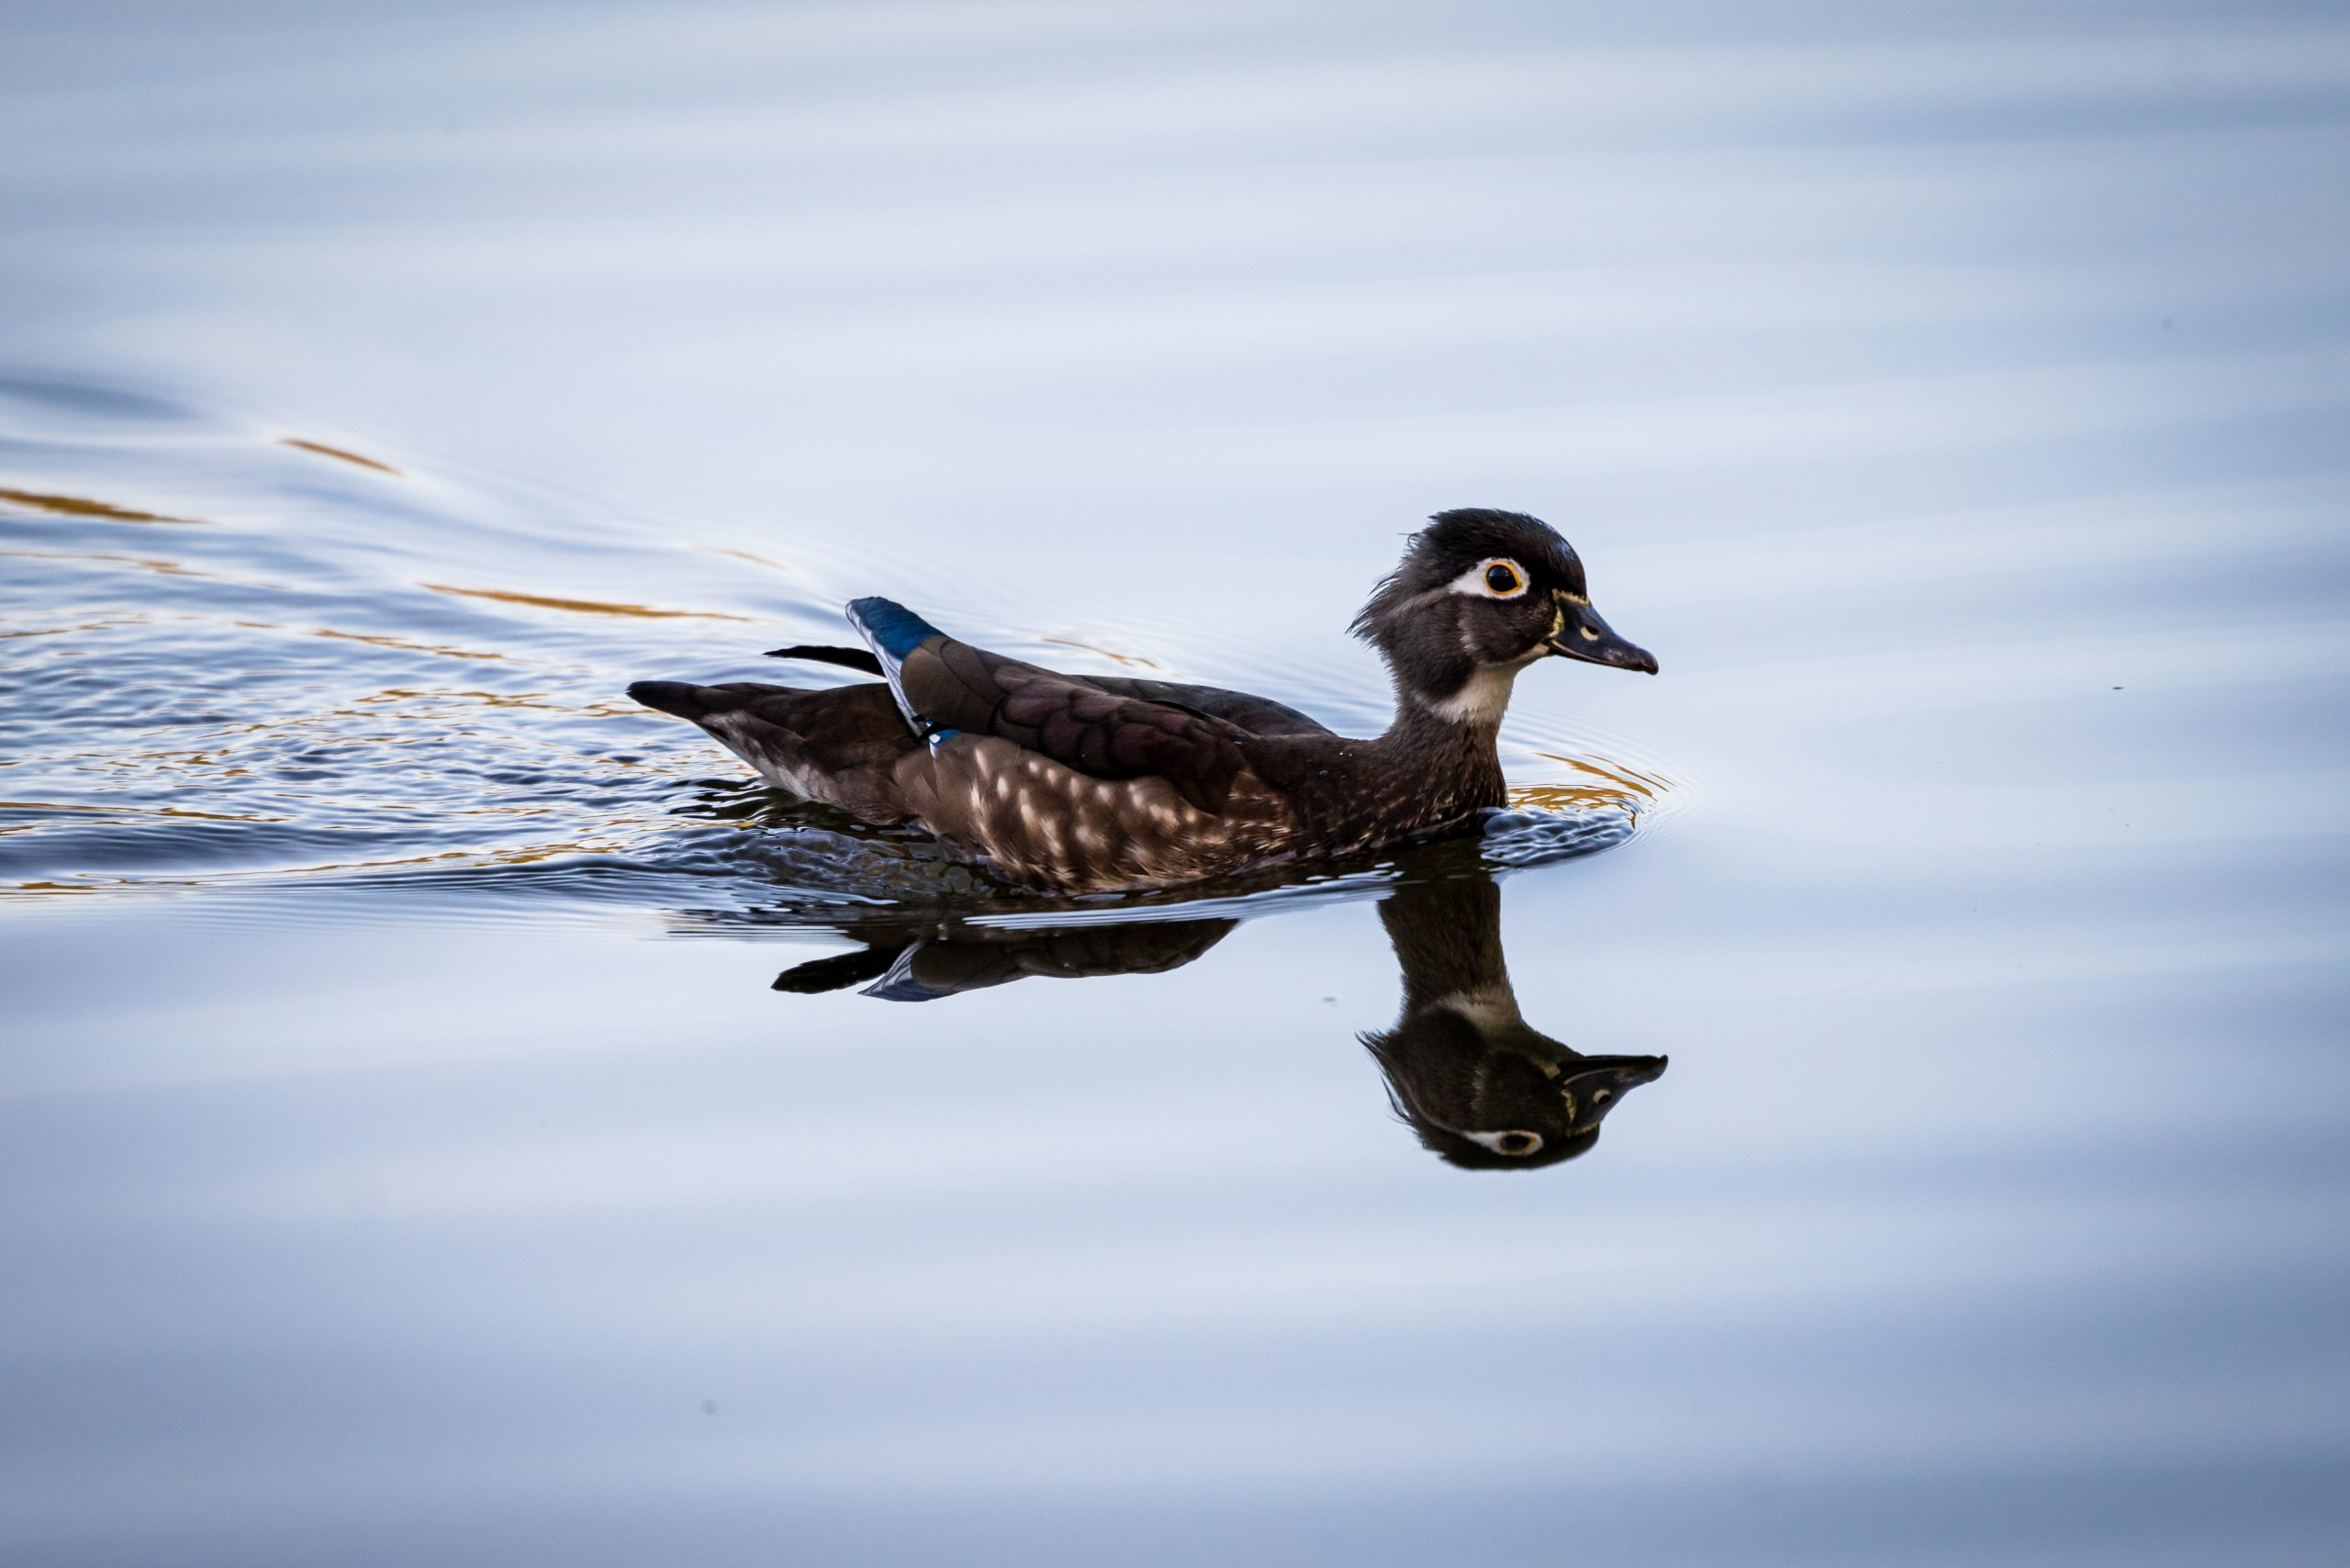 A female wood duck